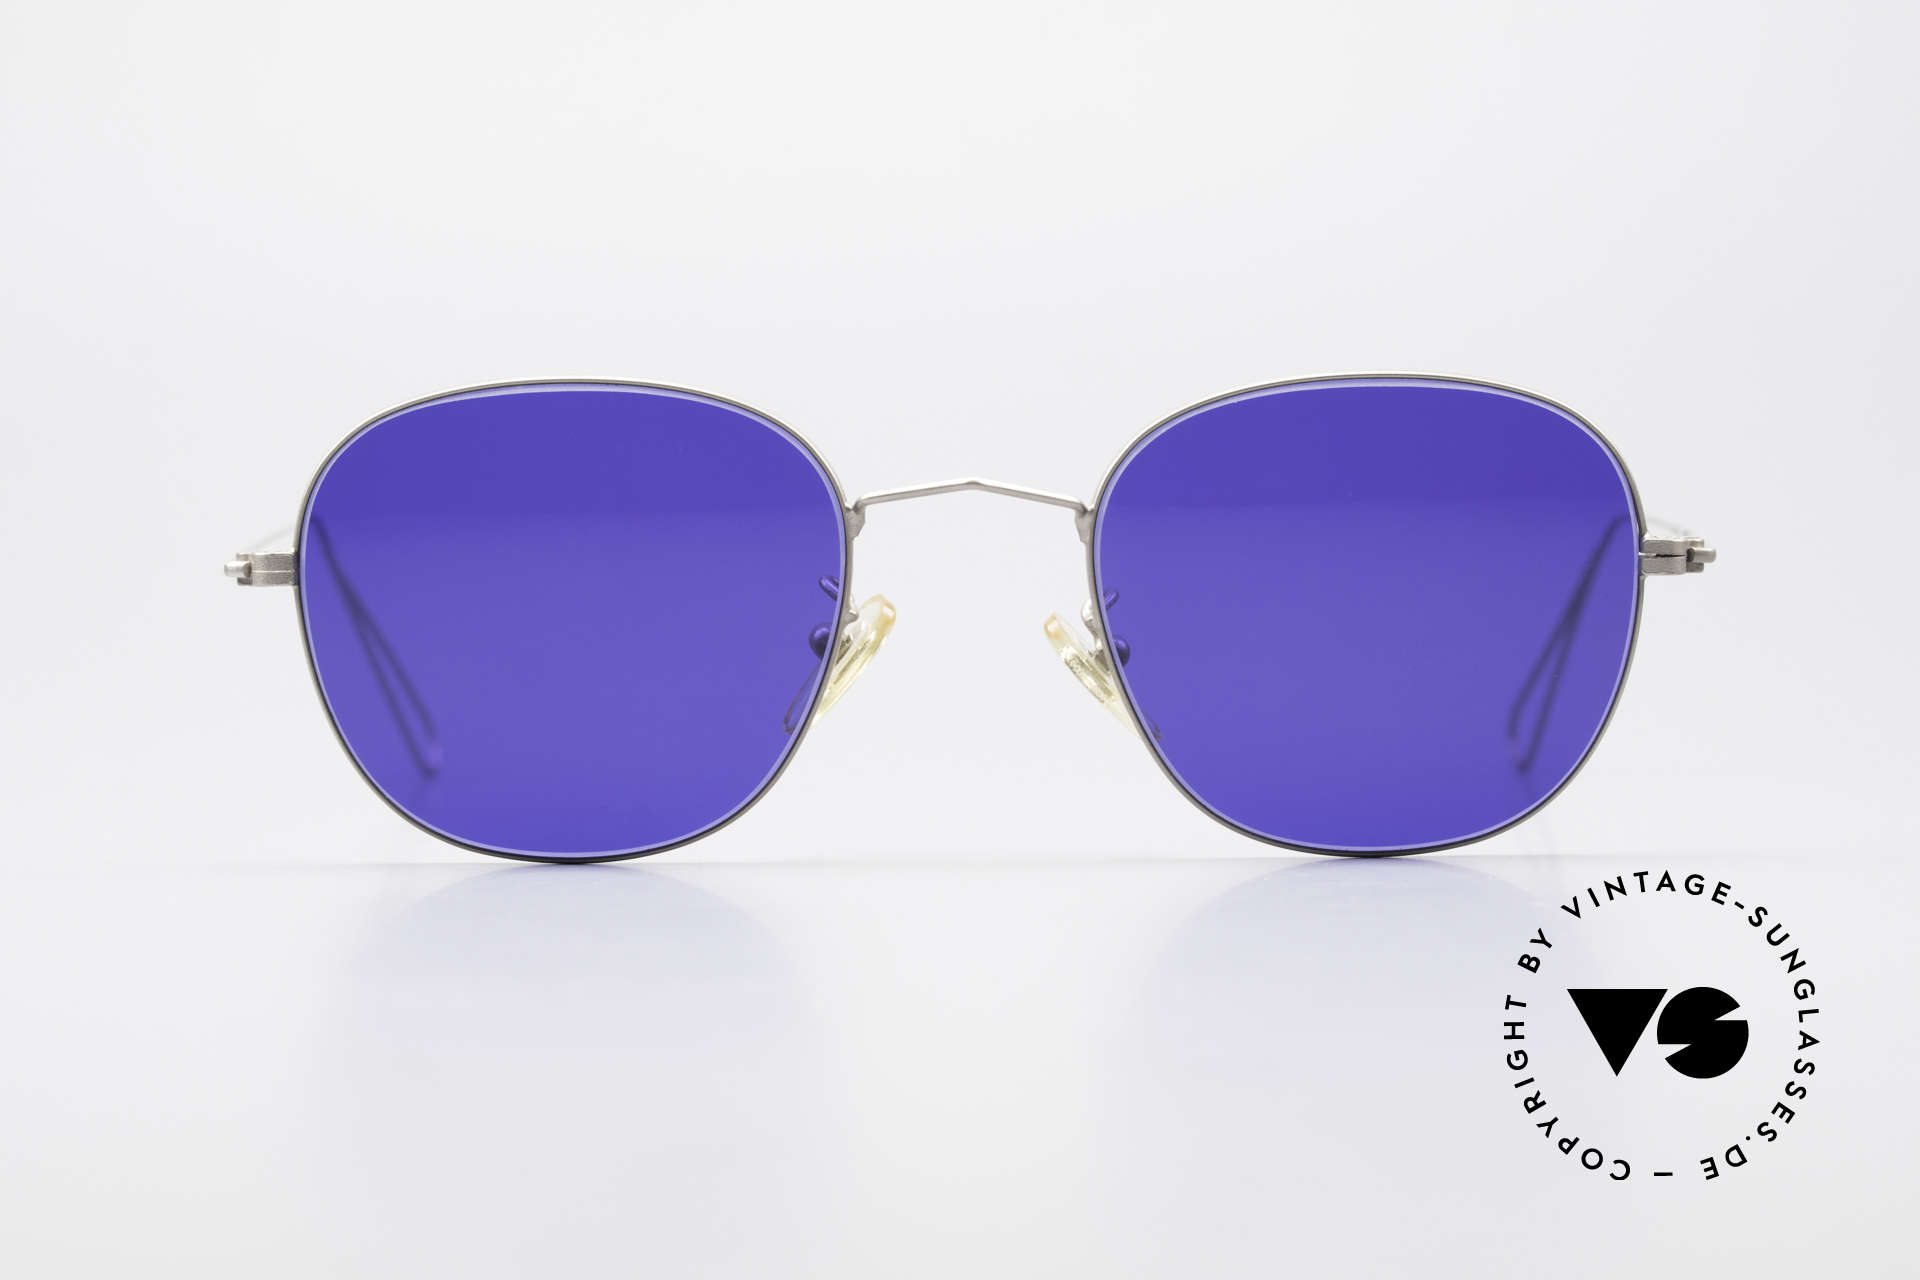 Cutler And Gross 0307 Classic Sunglasses Vintage, classic, timeless UNDERSTATEMENT luxury sunglasses, Made for Men and Women